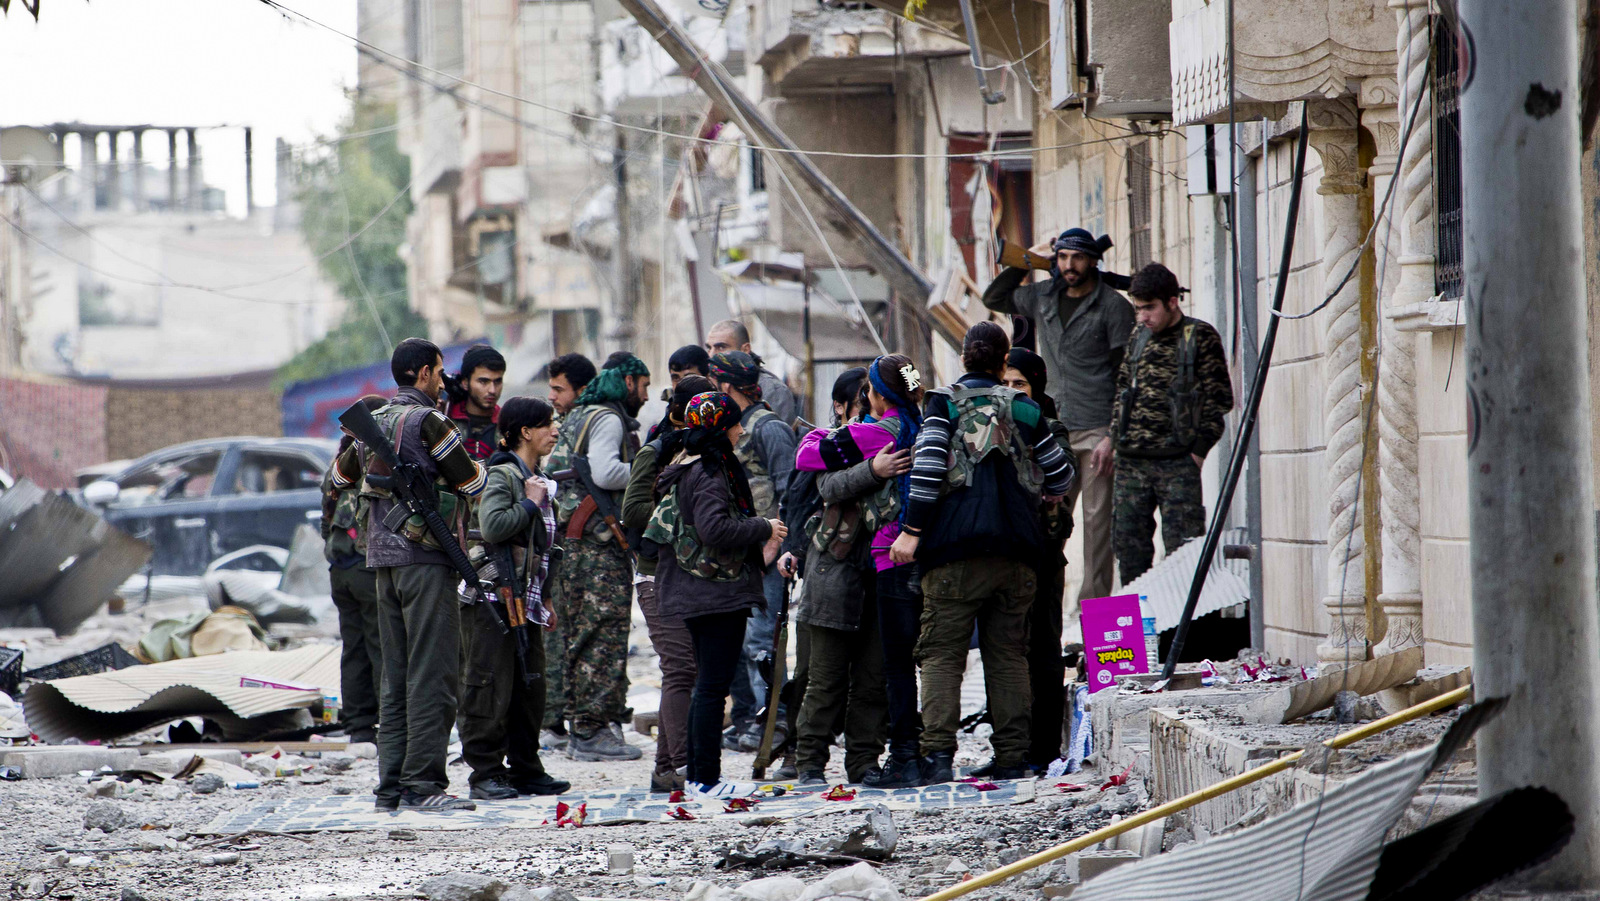 Kurds in Conflict-Ridden Northeastern Syria Turn to Kidnapping, Conscription, ISIS-like Tactics